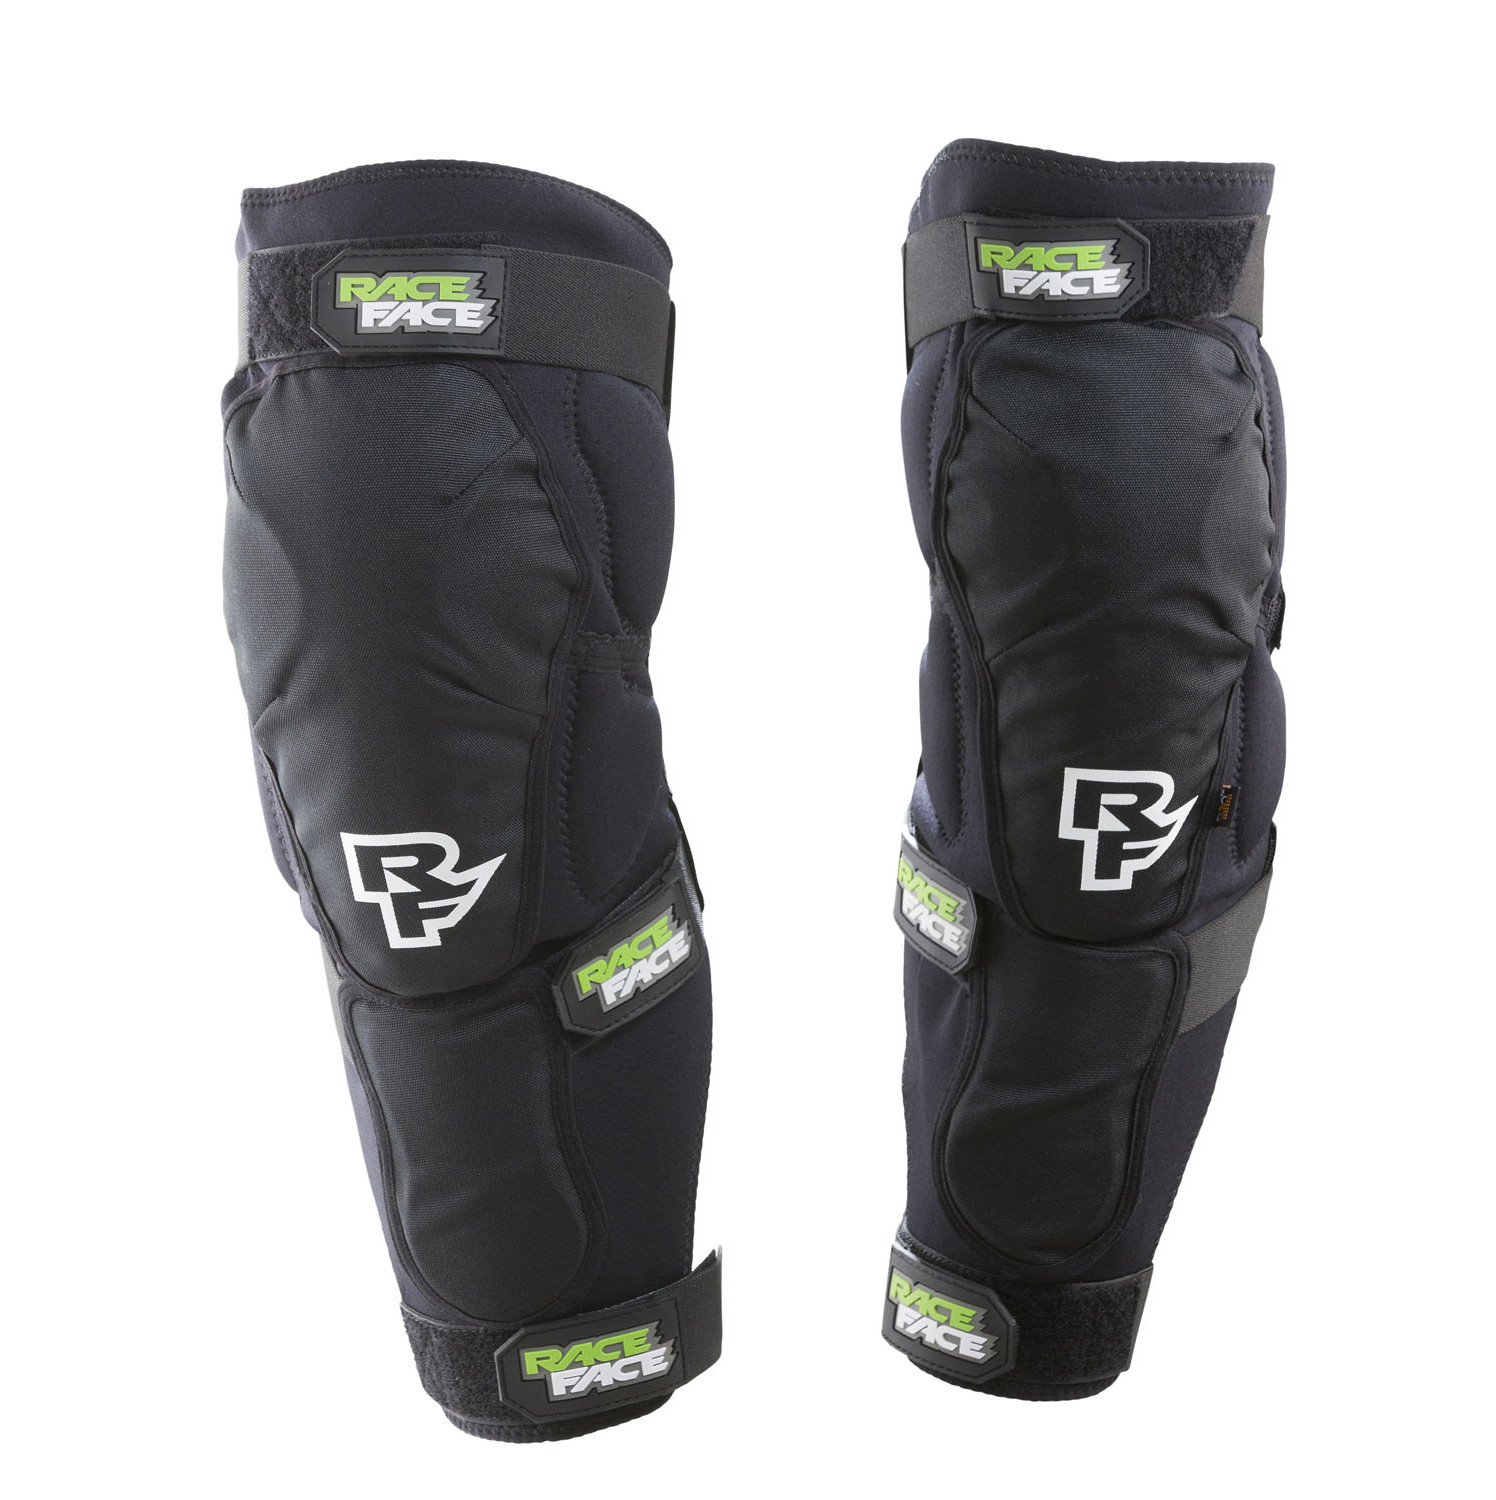 Race Car Jackets >> Race Face Flank Knee/Shin Pads - Reviews, Comparisons, Specs - Mountain Bike Knee/Shin Pads ...